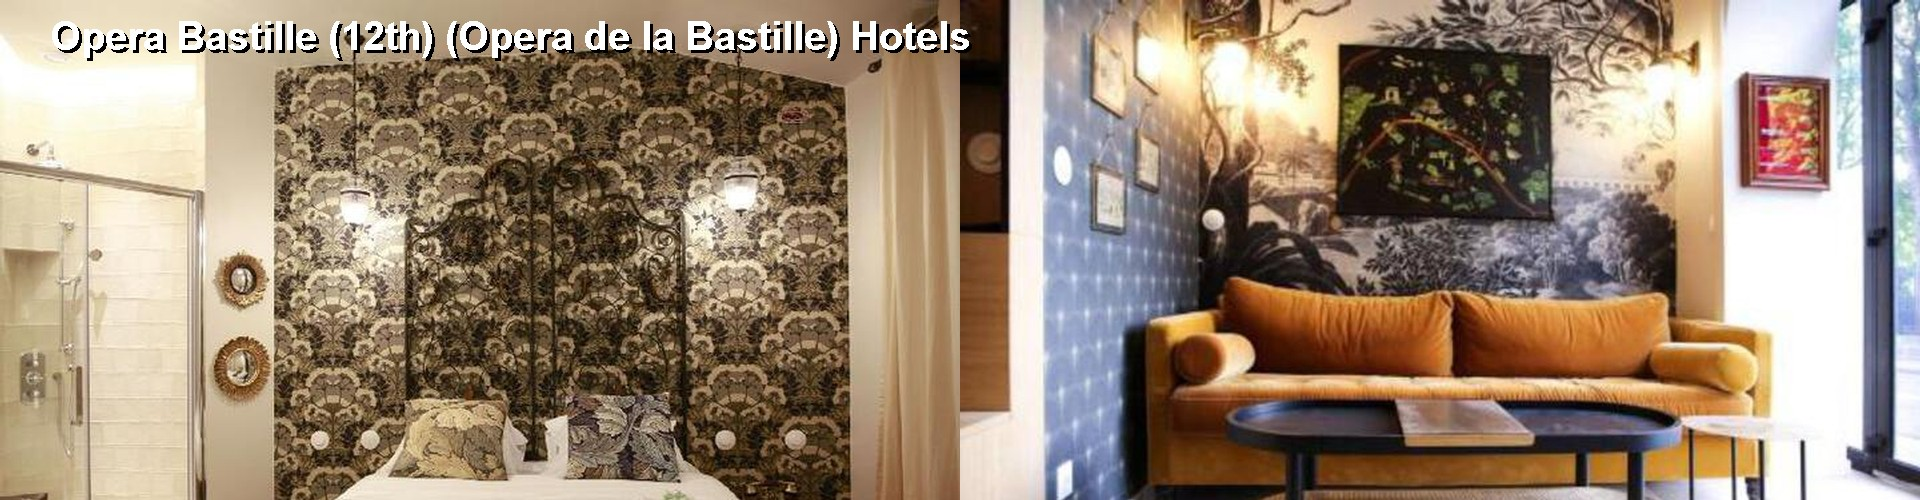 5 Best Hotels near Opera Bastille (12th) (Opera de la Bastille)